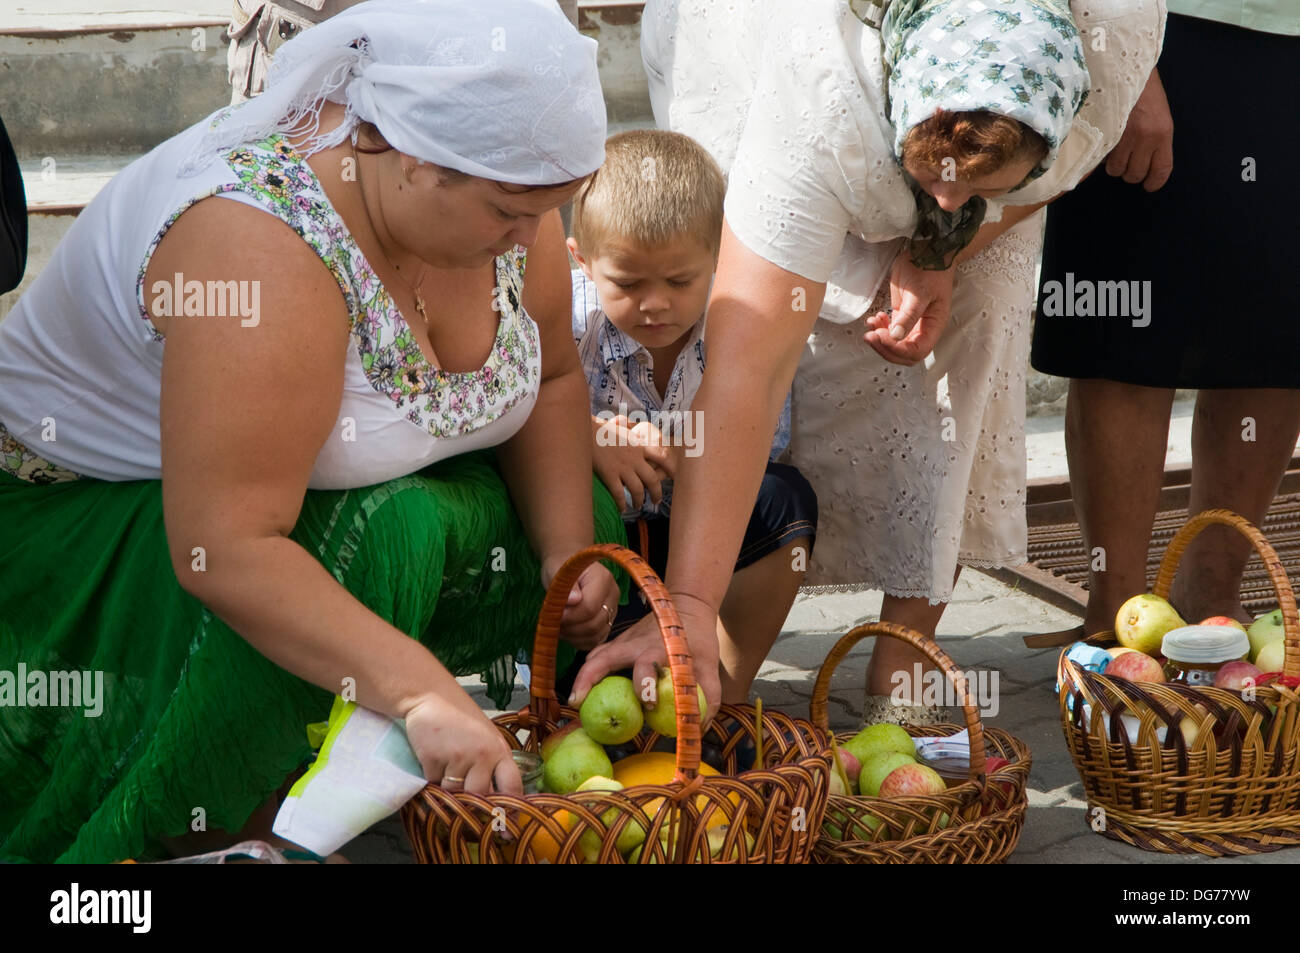 Ukraine, Borispol, church of sveti Boris and Gleb, donation for the blessing. - Stock Image